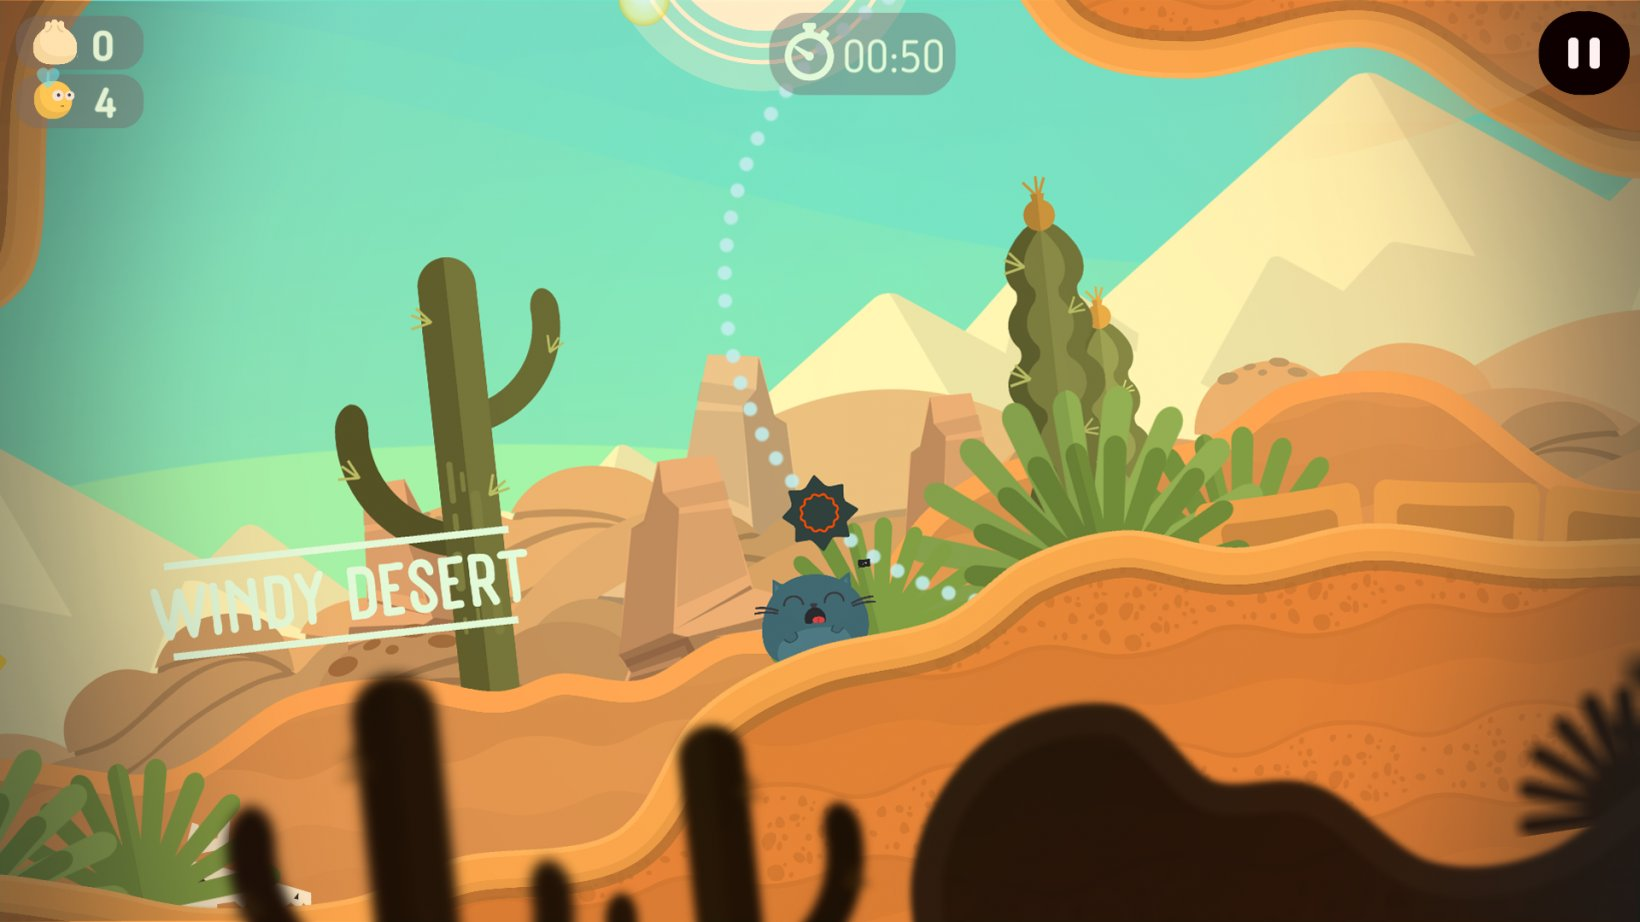 The Big Journey is an utterly adorable physics-based platformer, coming to iOS next week